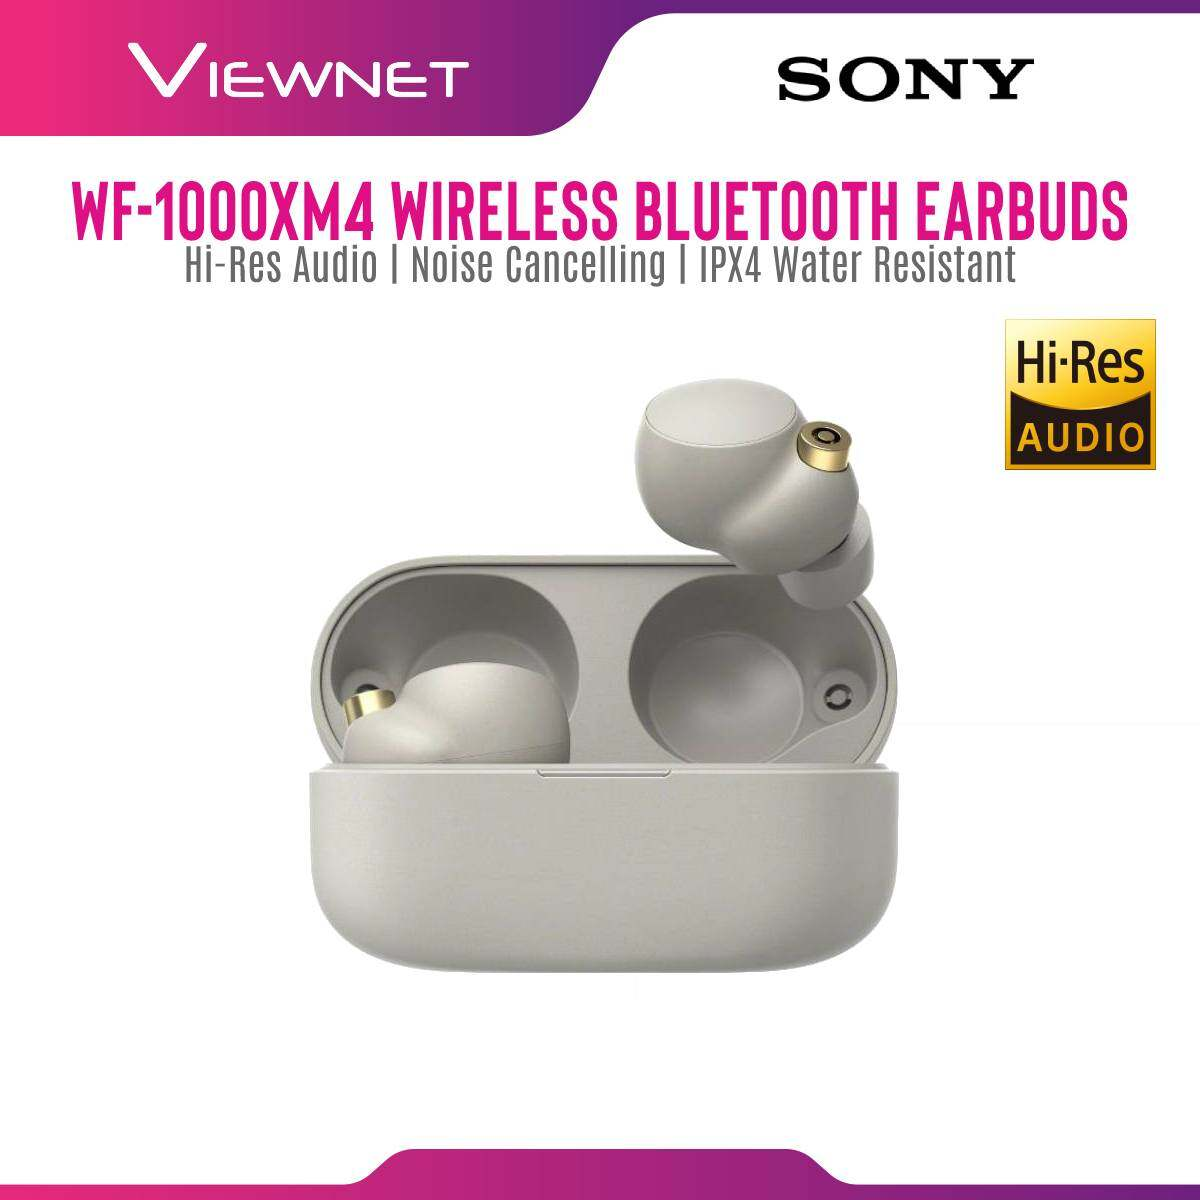 [PRE-ORDER] [NEW LAUNCH] Sony WF-1000XM4 / WF1000XM4 XM4 Wireless Bluetooth Noise Cancelling In Ear Earbuds with Charging Case, IPX4 Water Resistance (ETA: 2021-08-20)